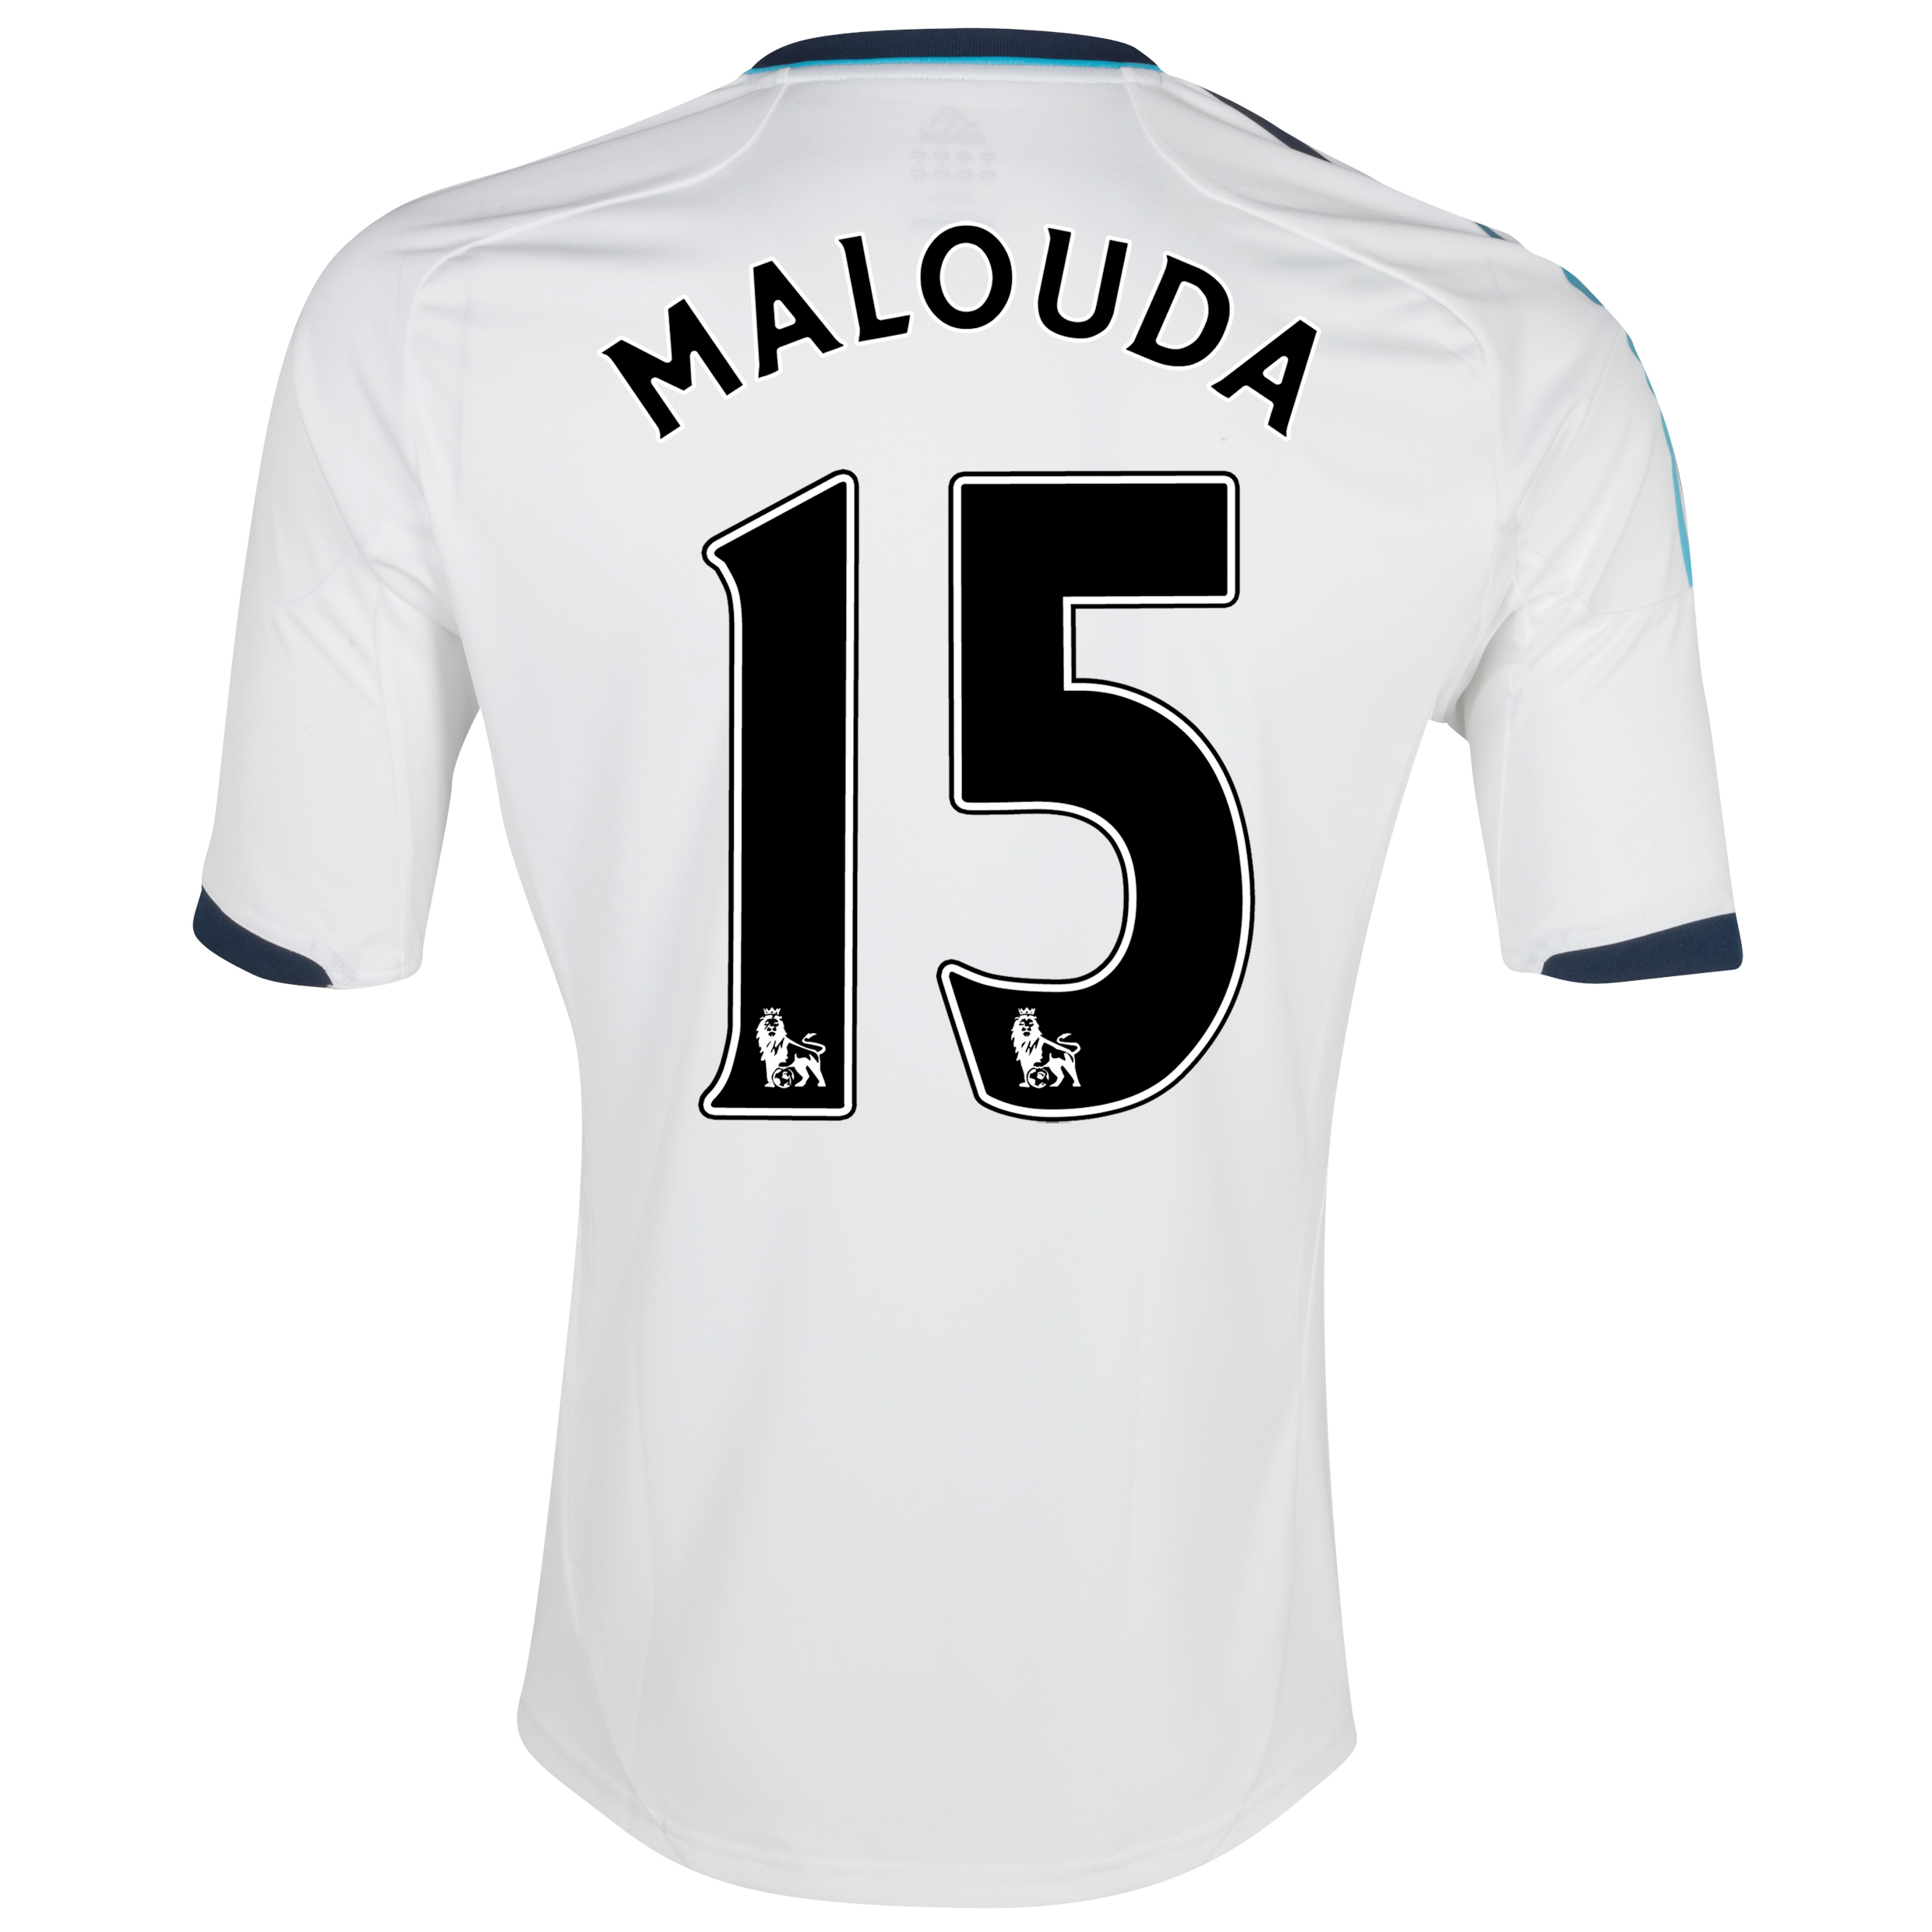 Chelsea Away Shirt 2012/13 - Kids with Malouda 15 printing